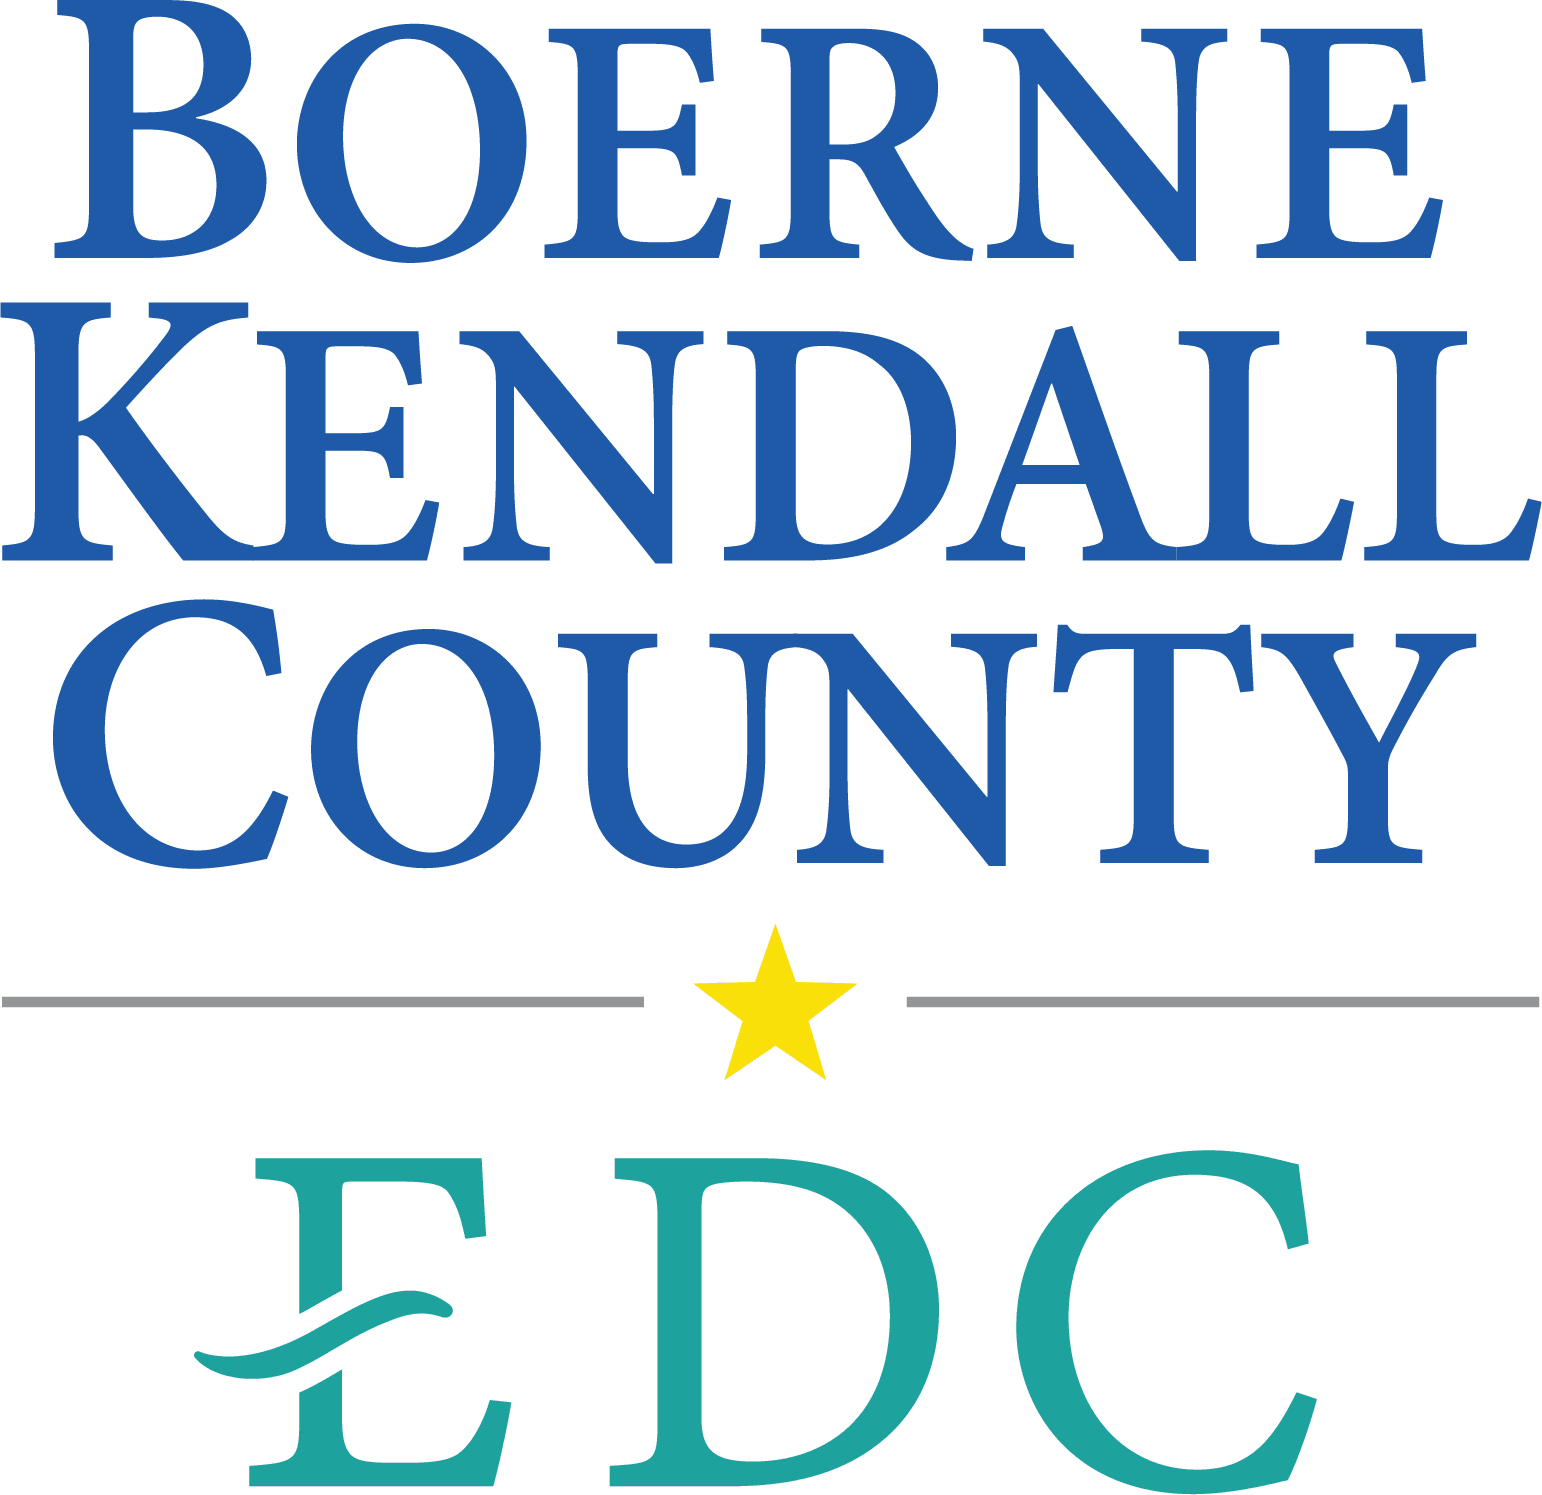 Boerne Kendall County EDC